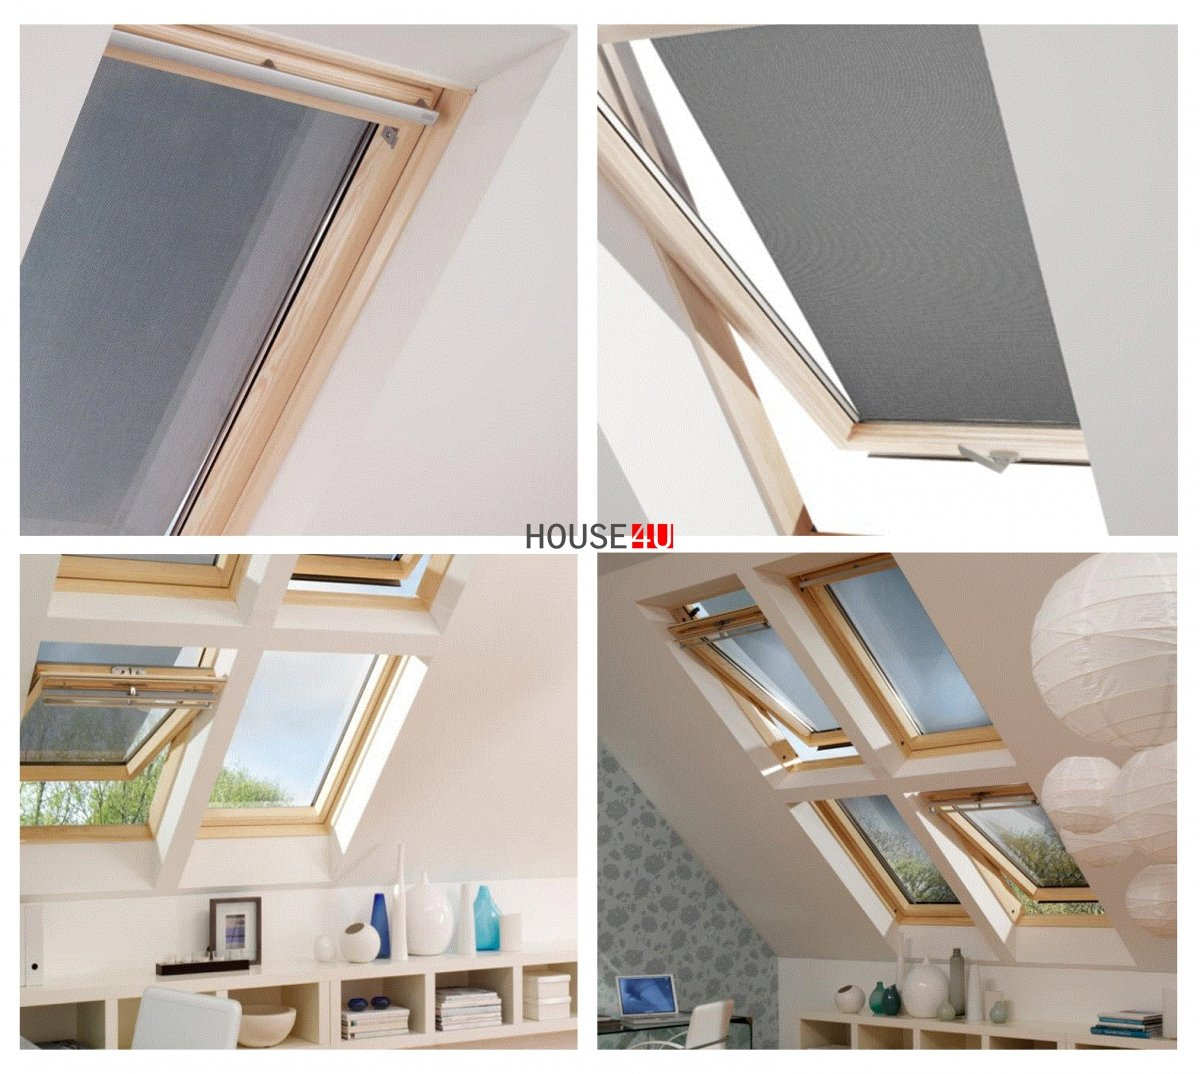 anti hitze markise mur contrio hitzeschutz markise f r velux dachfenster markise velux. Black Bedroom Furniture Sets. Home Design Ideas